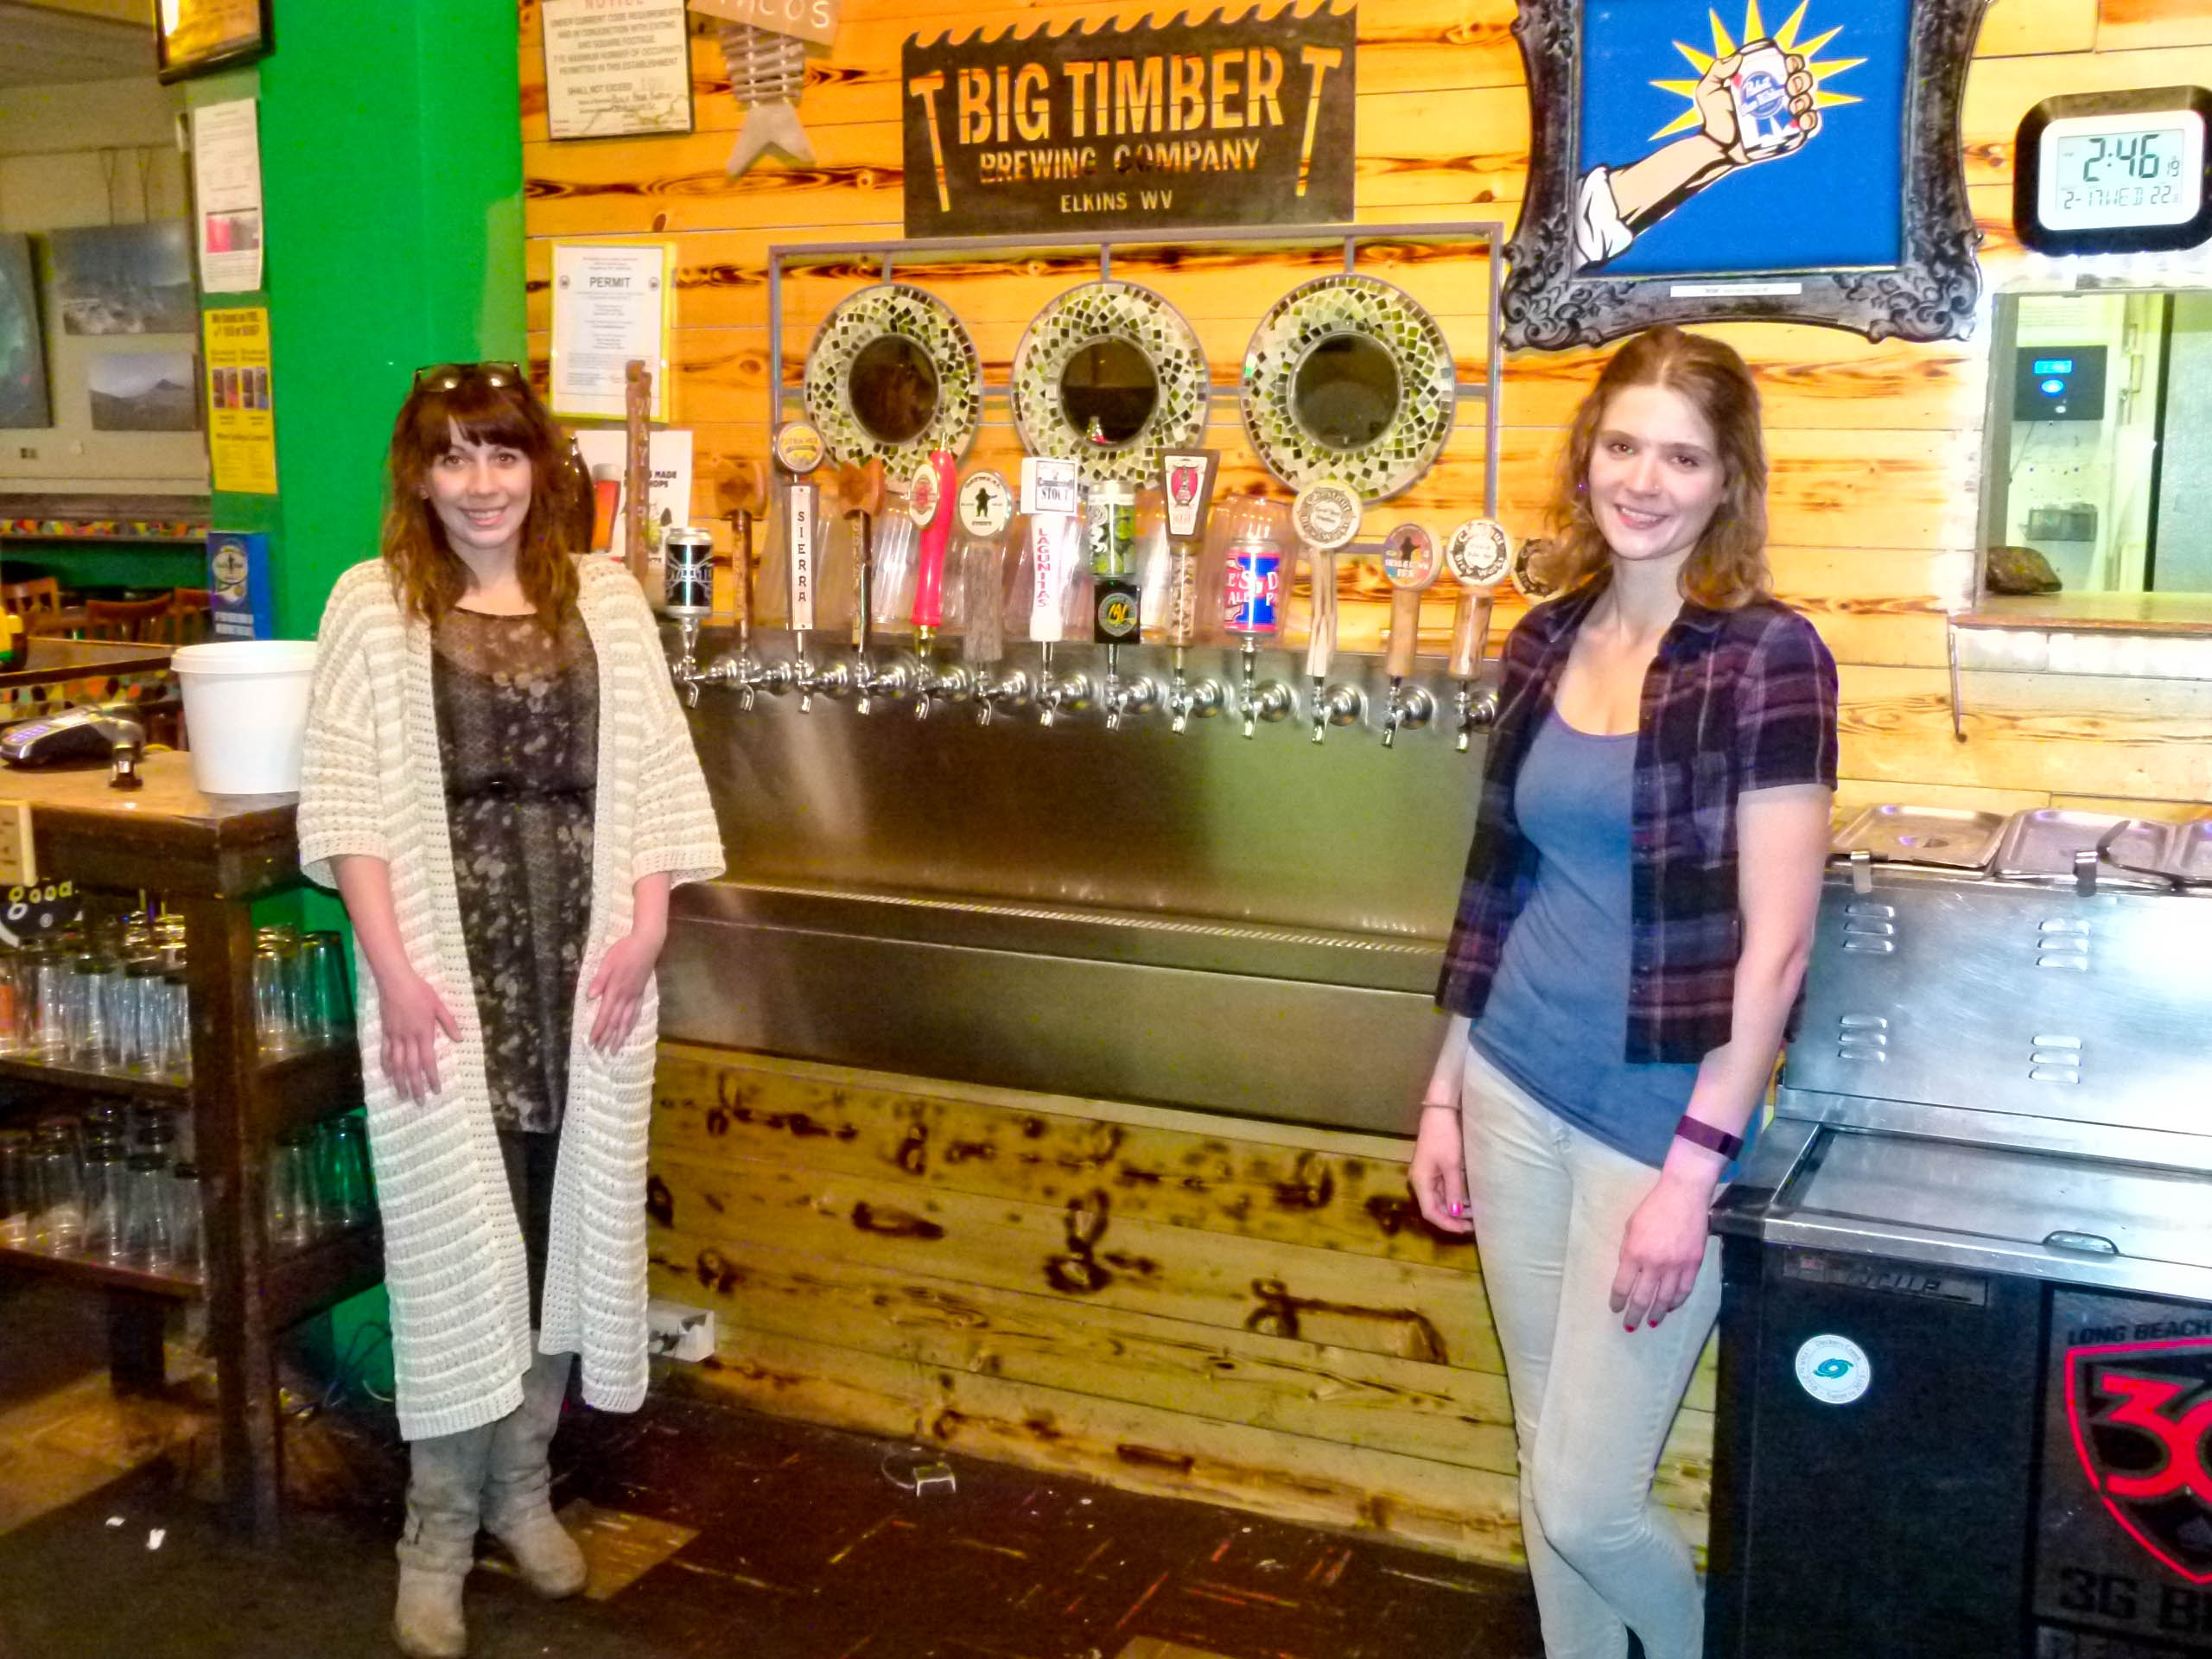 Amber (l.) and Carolyn (r.) frame the bar's wide selection of draft beers.